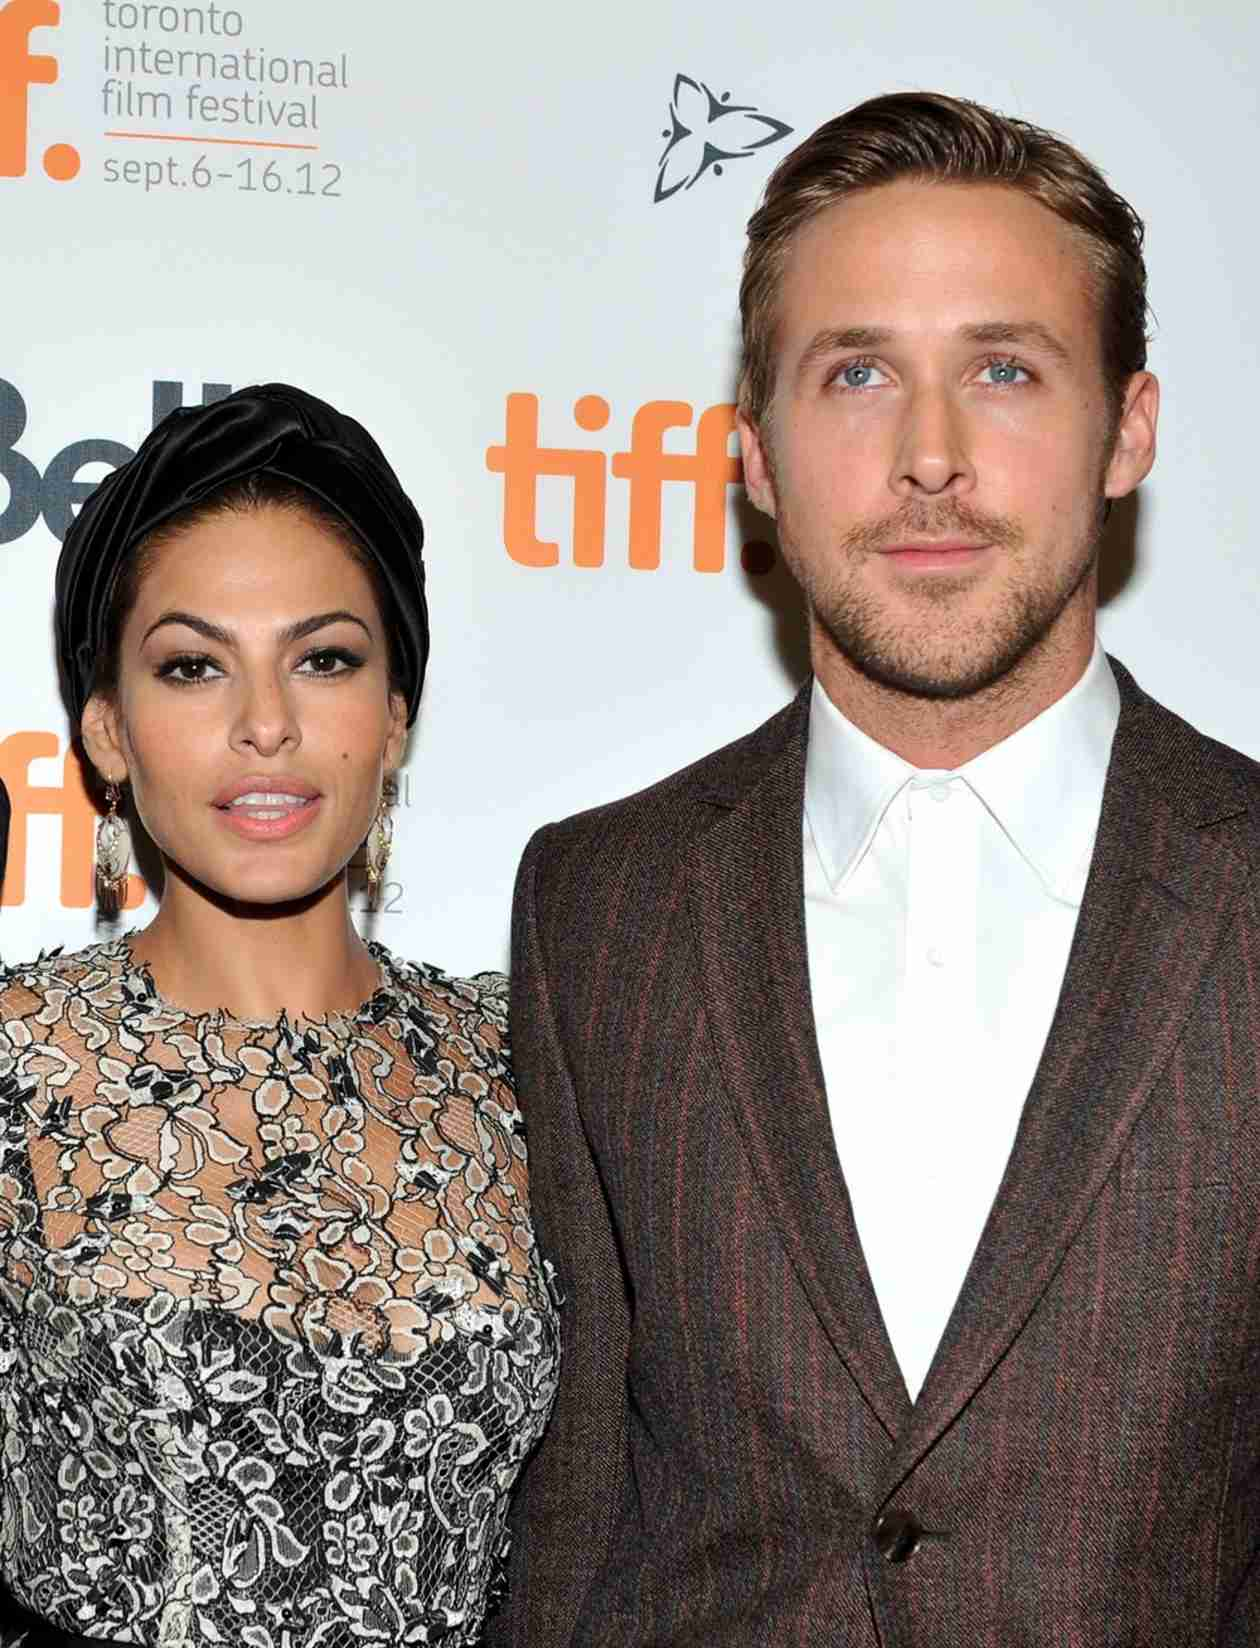 Ryan Gosling And Eva Mendes Changed Their Lifestyle To Keep Pregnancy A Secret — Report (VIDEO)